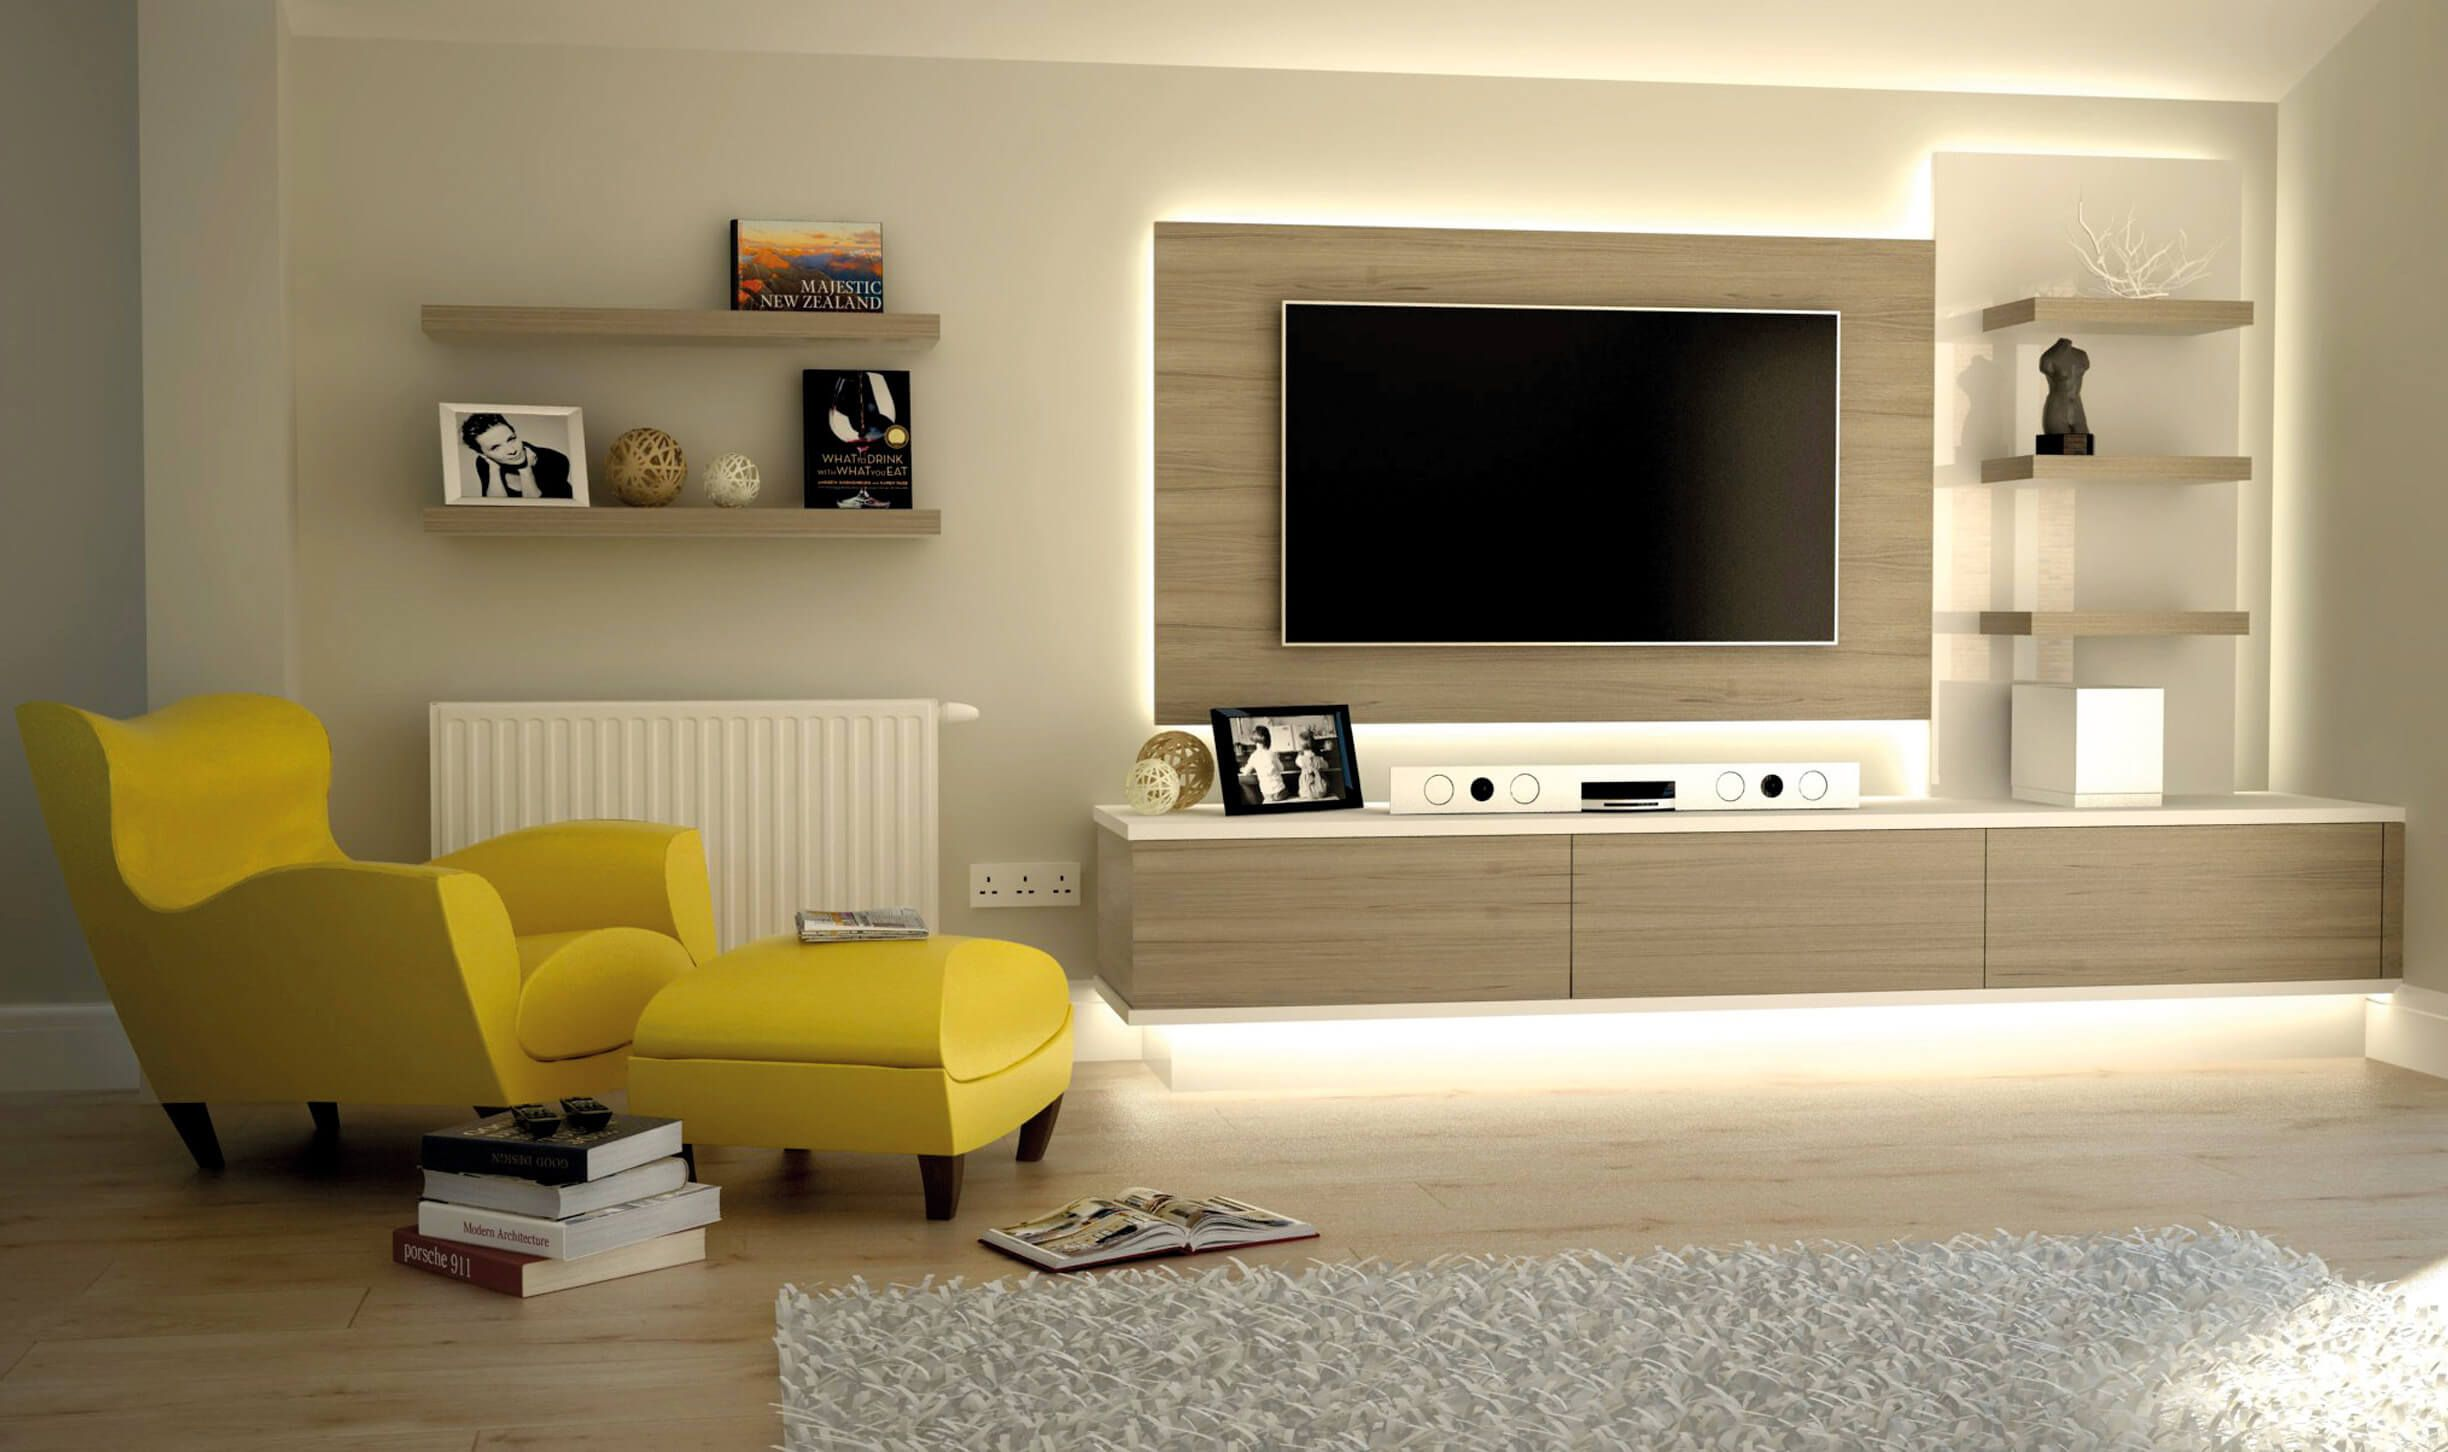 Bespoke Fitted Tv Units Living Room Furniture Living Room Wall Units Built In Tv Cabinet Living Room Tv